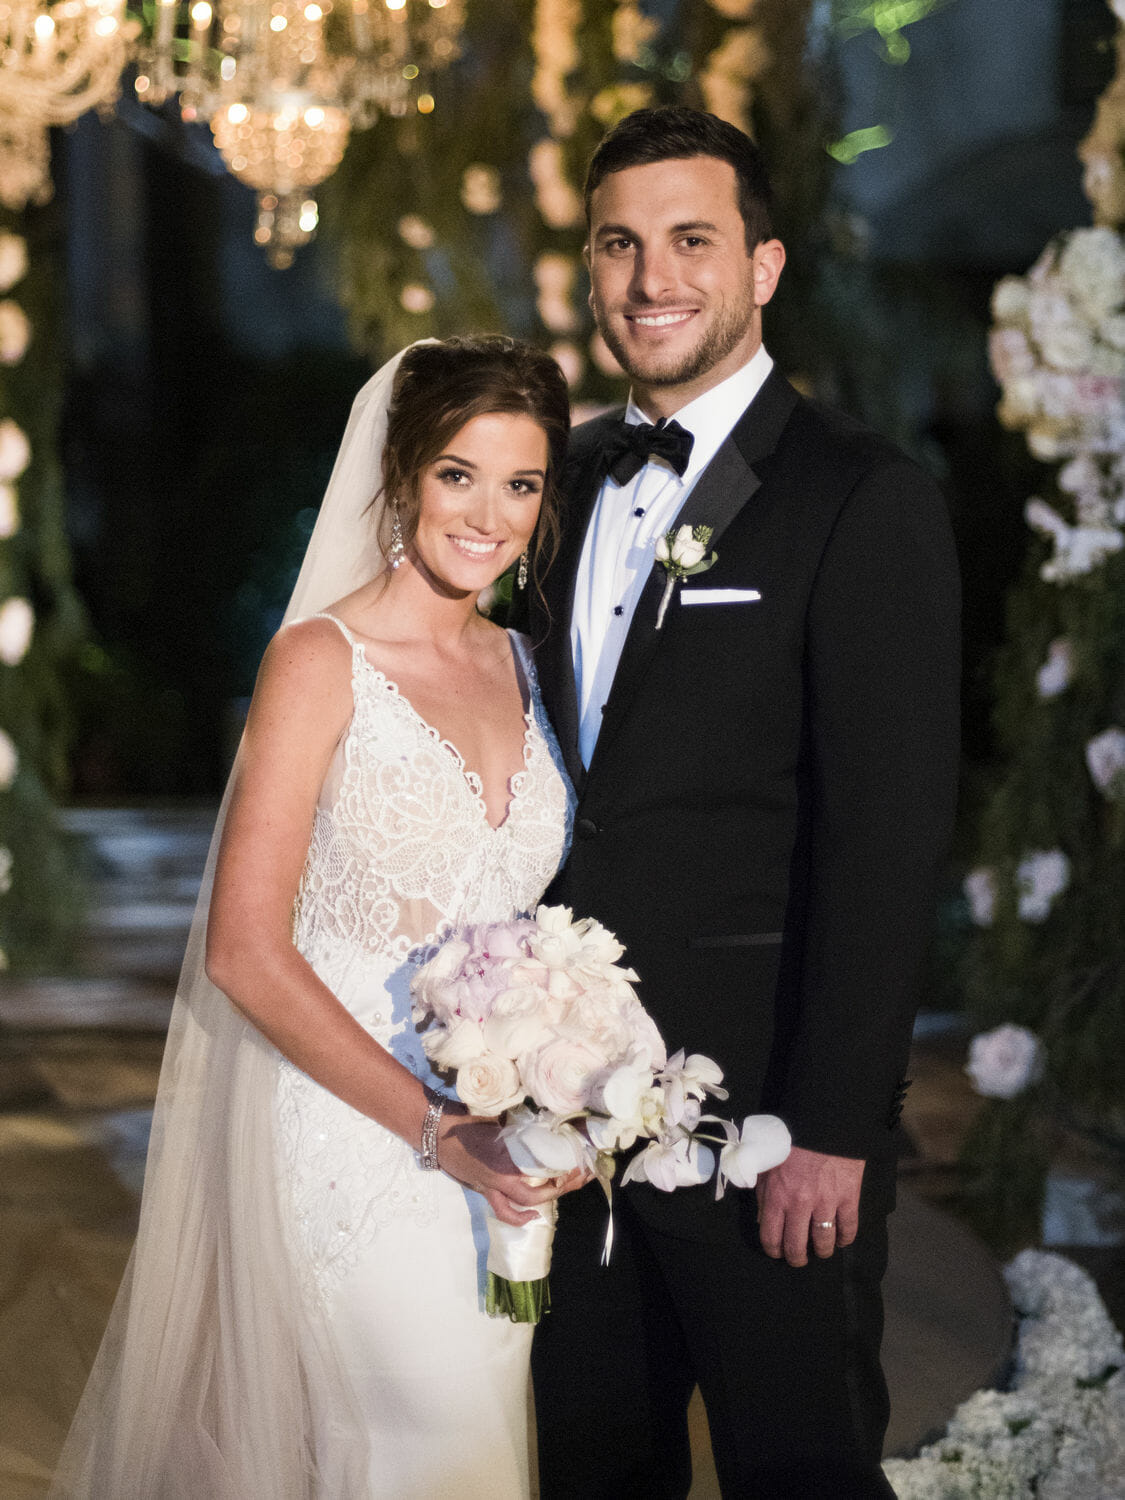 wedding-bachelor-abc-jade-roper-tanner-tolbert-johnandjoseph164